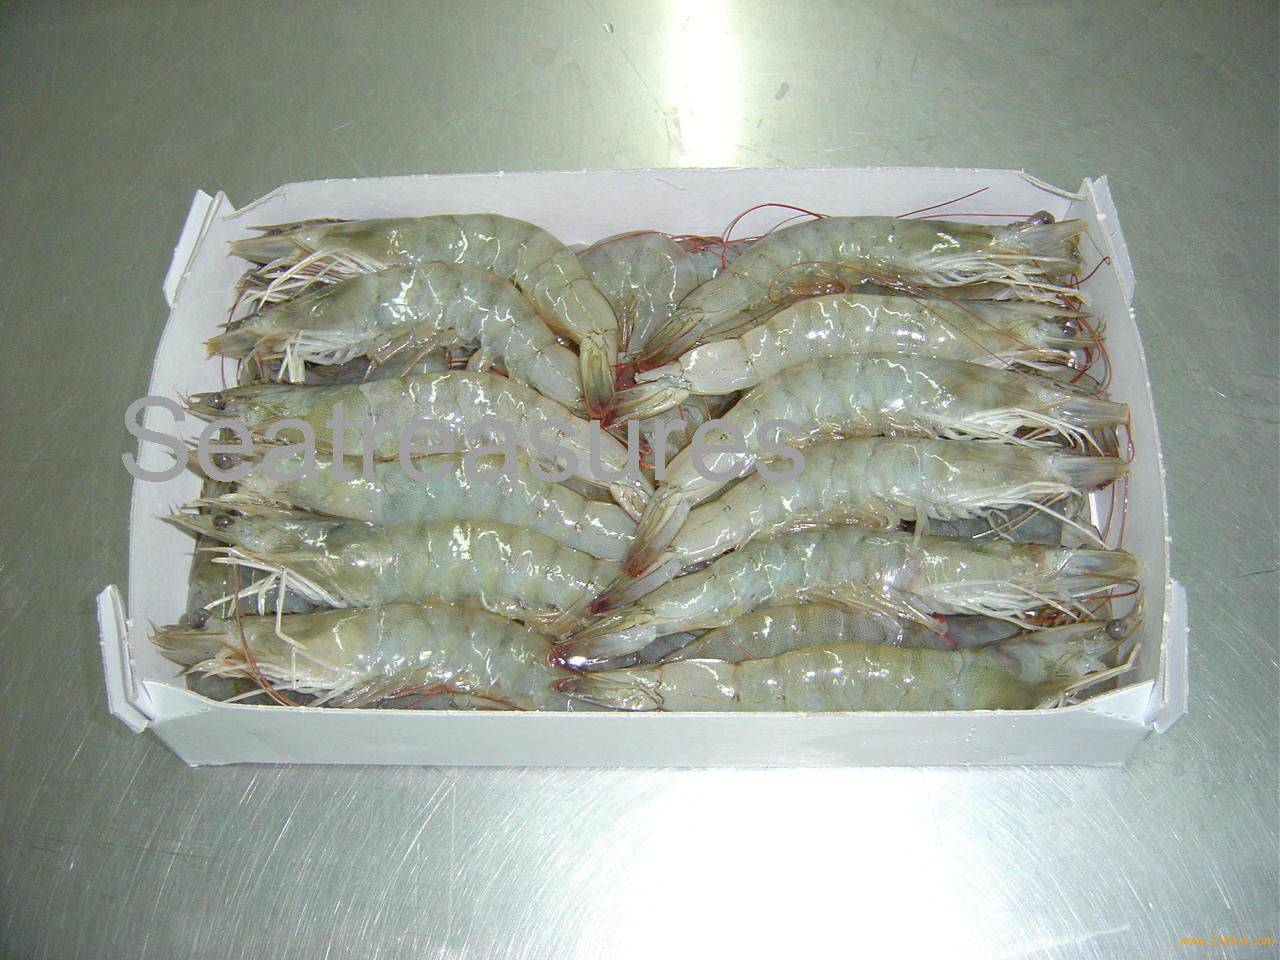 Sell Vannamei Shrimp